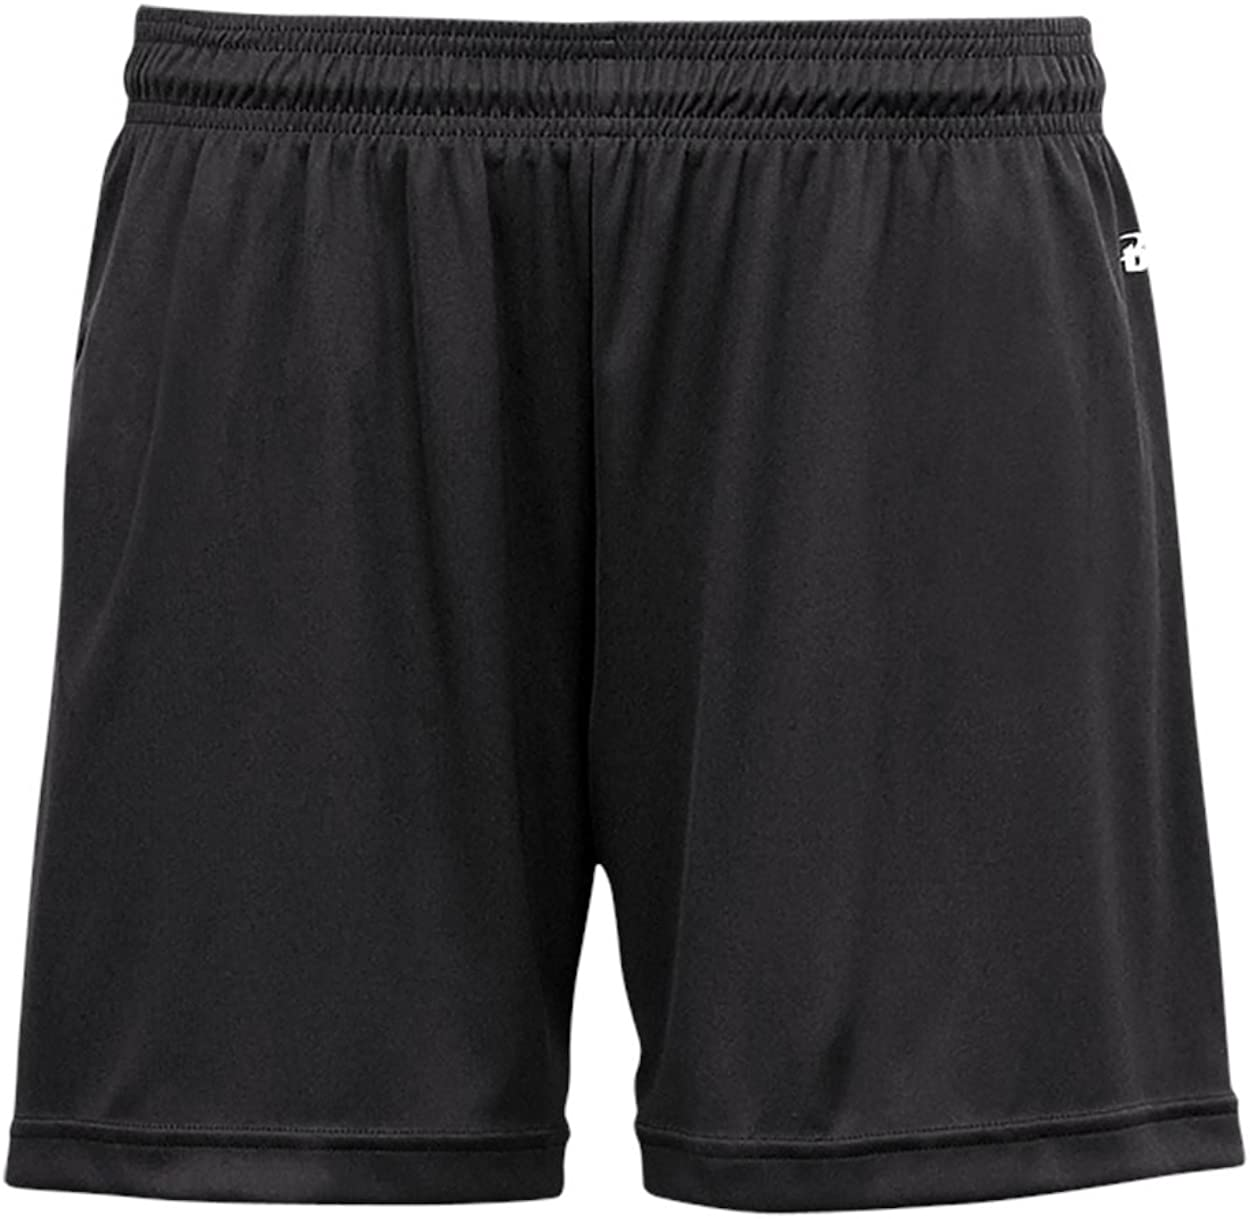 "Badger Sport Athletic Performance Shorts Wicking Girls (4"") Ladies (5""), 16 Colors"